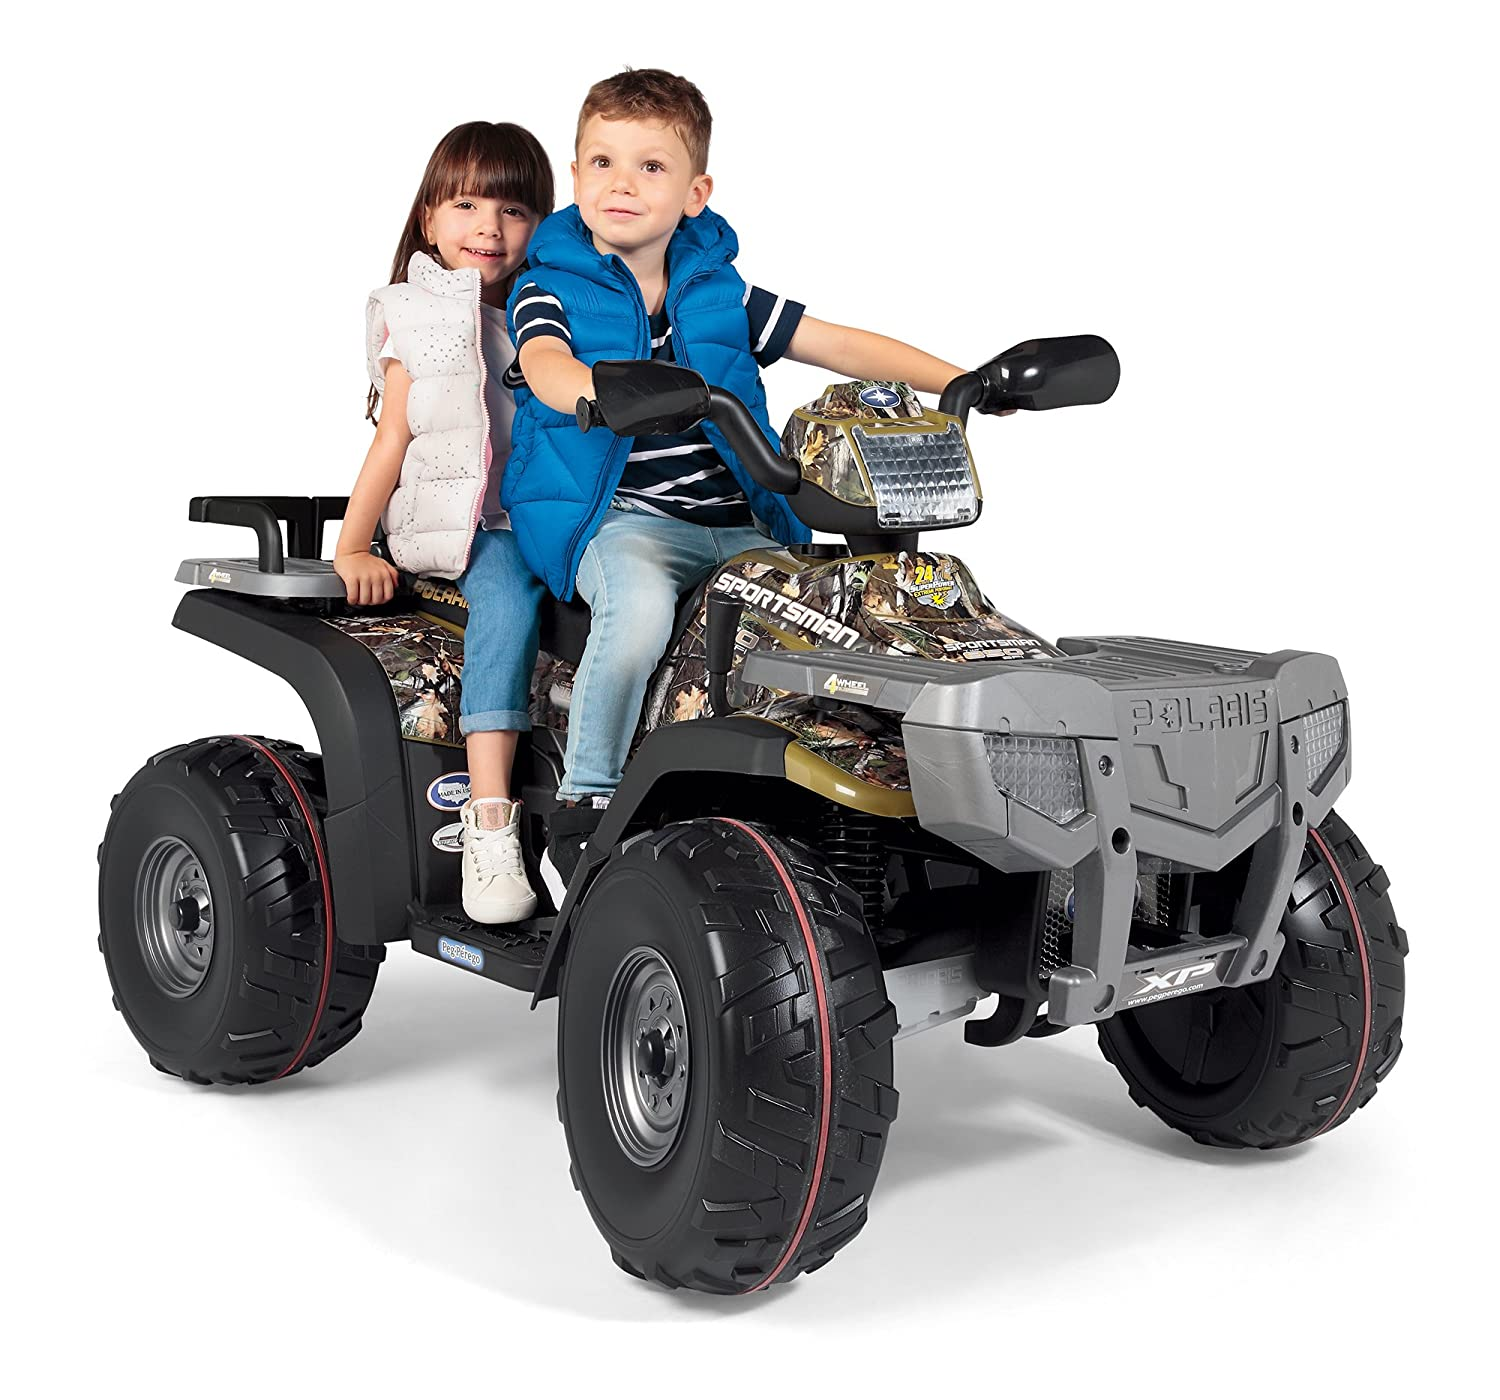 9 Best Battery Powered Kids Vehicles Reviews in 2021 16